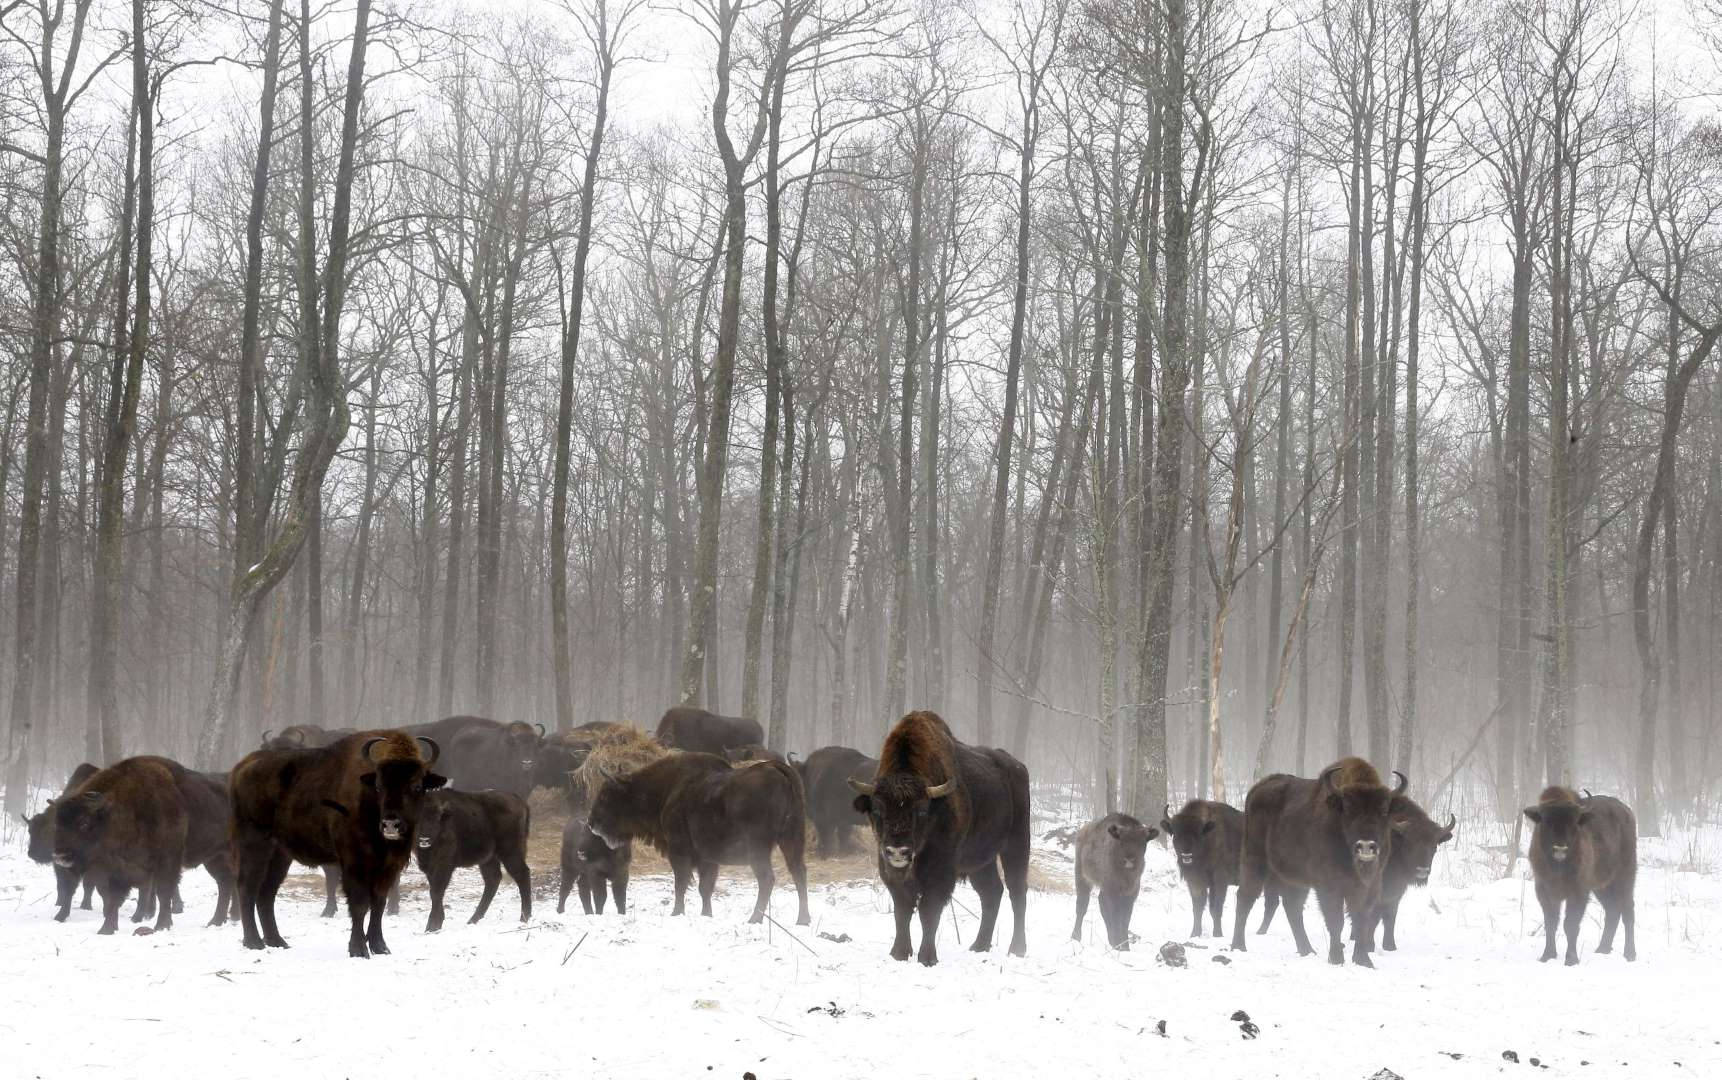 World Remembers 30th Anniversary of Chernobyl Disaster. Wildlife Returns to Exclusion Zone. Bison in Dronki Village, Belarus.